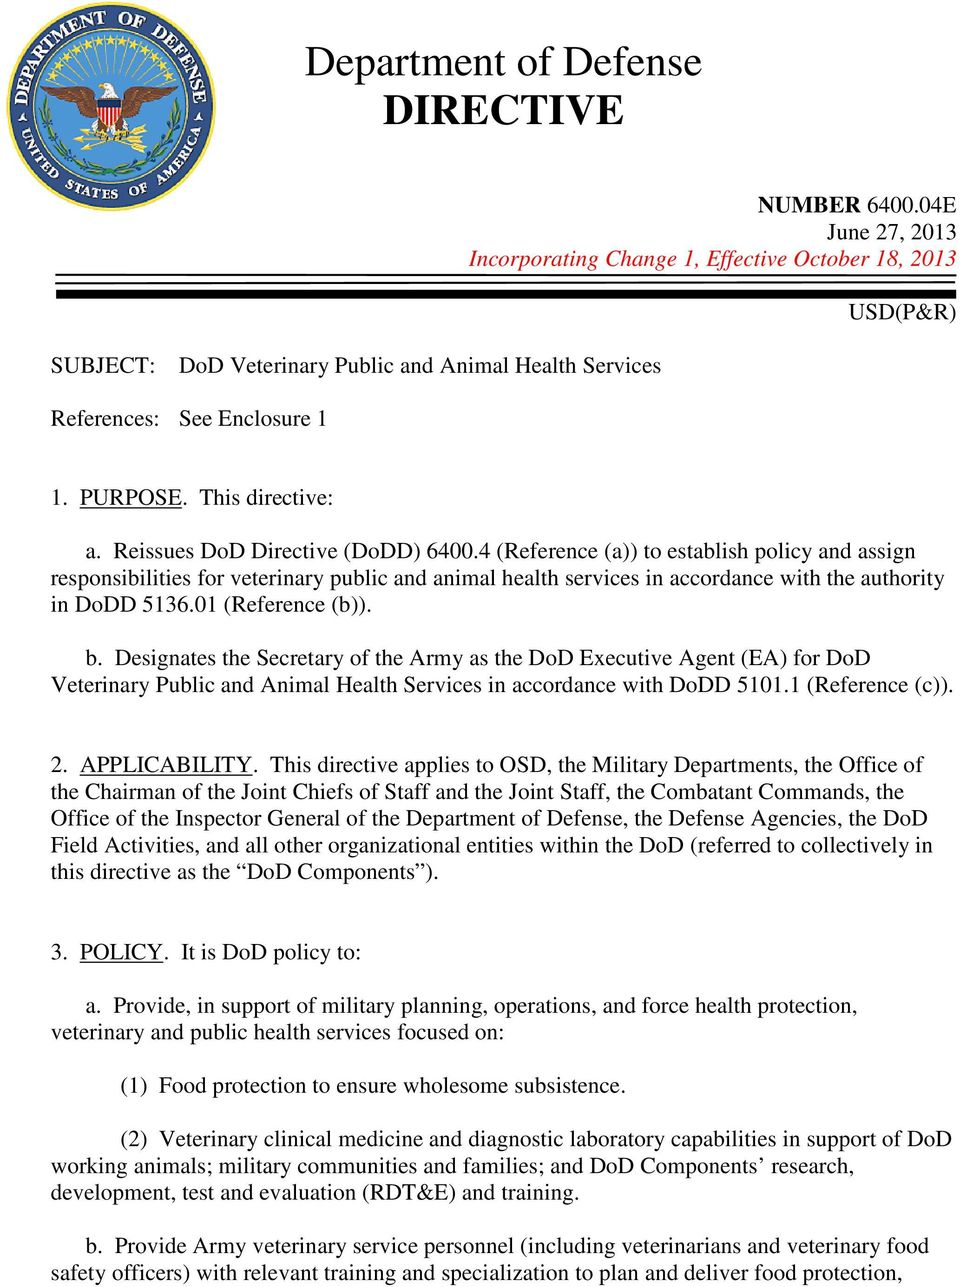 Reissues DoD Directive (DoDD) 6400.4 (Reference (a)) to establish policy and assign responsibilities for veterinary public and animal health services in accordance with the authority in DoDD 5136.